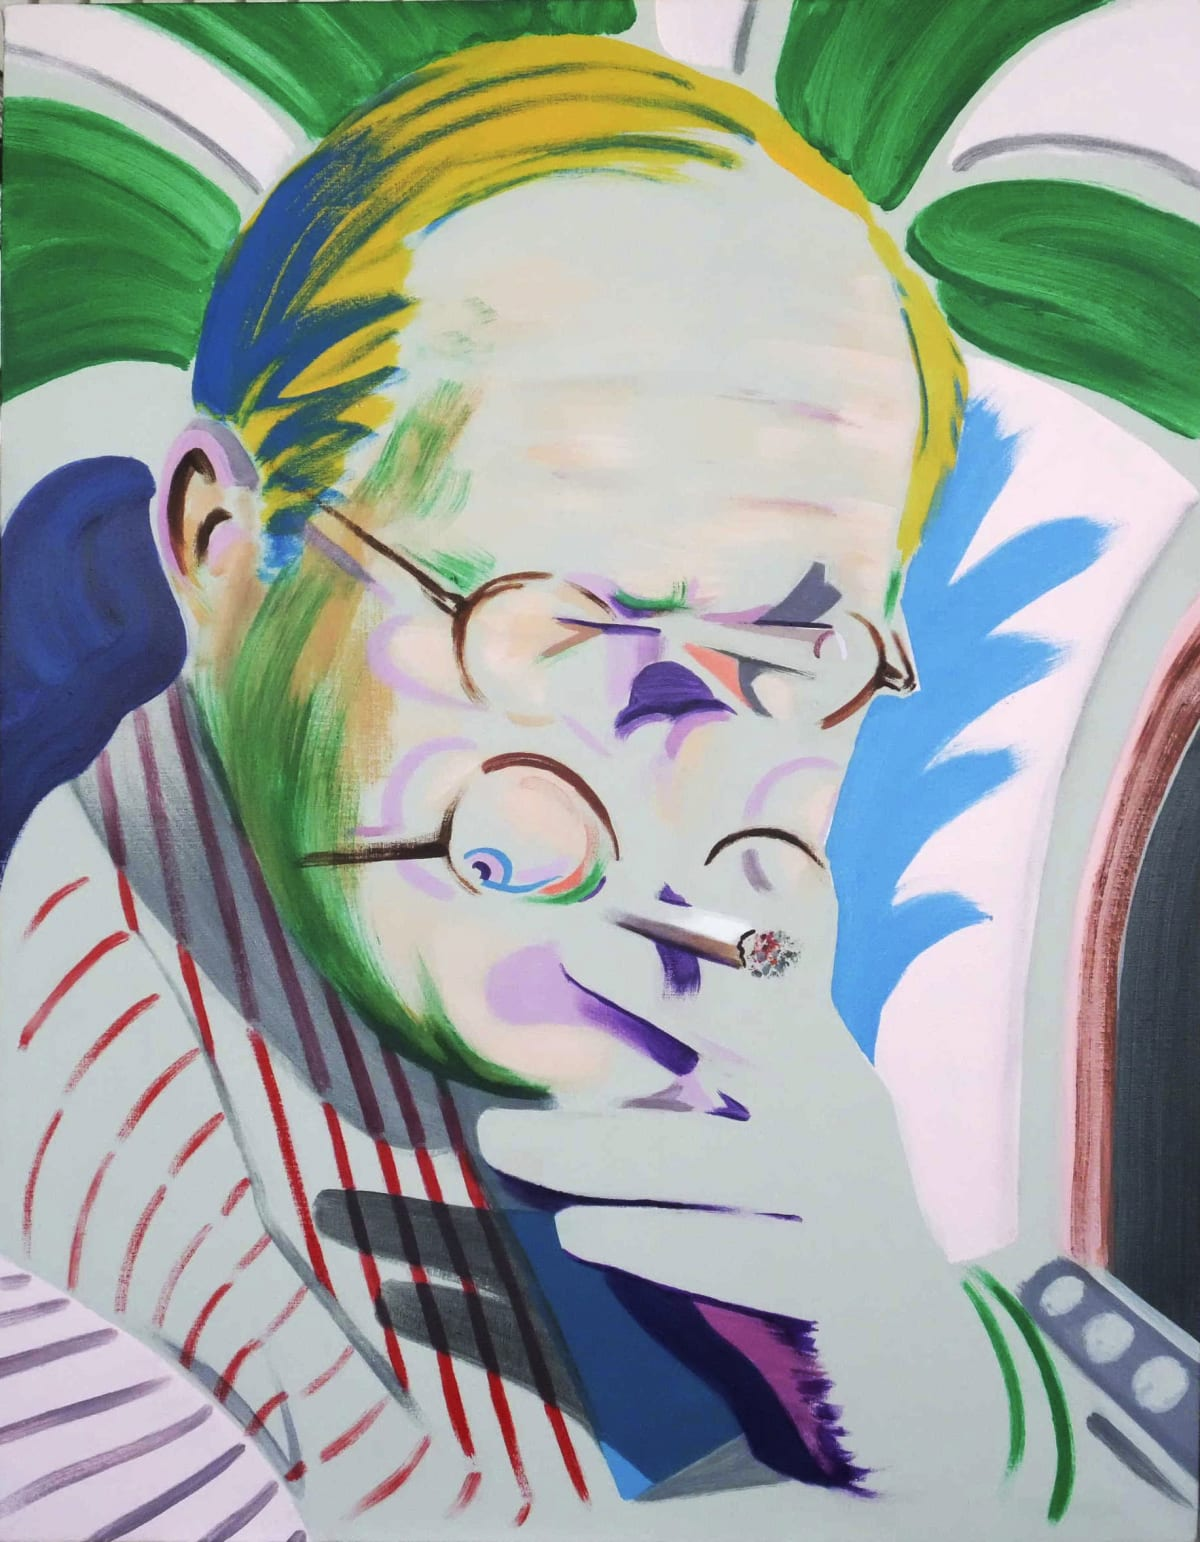 Darren Coffield Hockney Takes a Breather II , 2012 Acrylic on canvas 77 x 60 cm 30 1/4 x 23 5/8 in